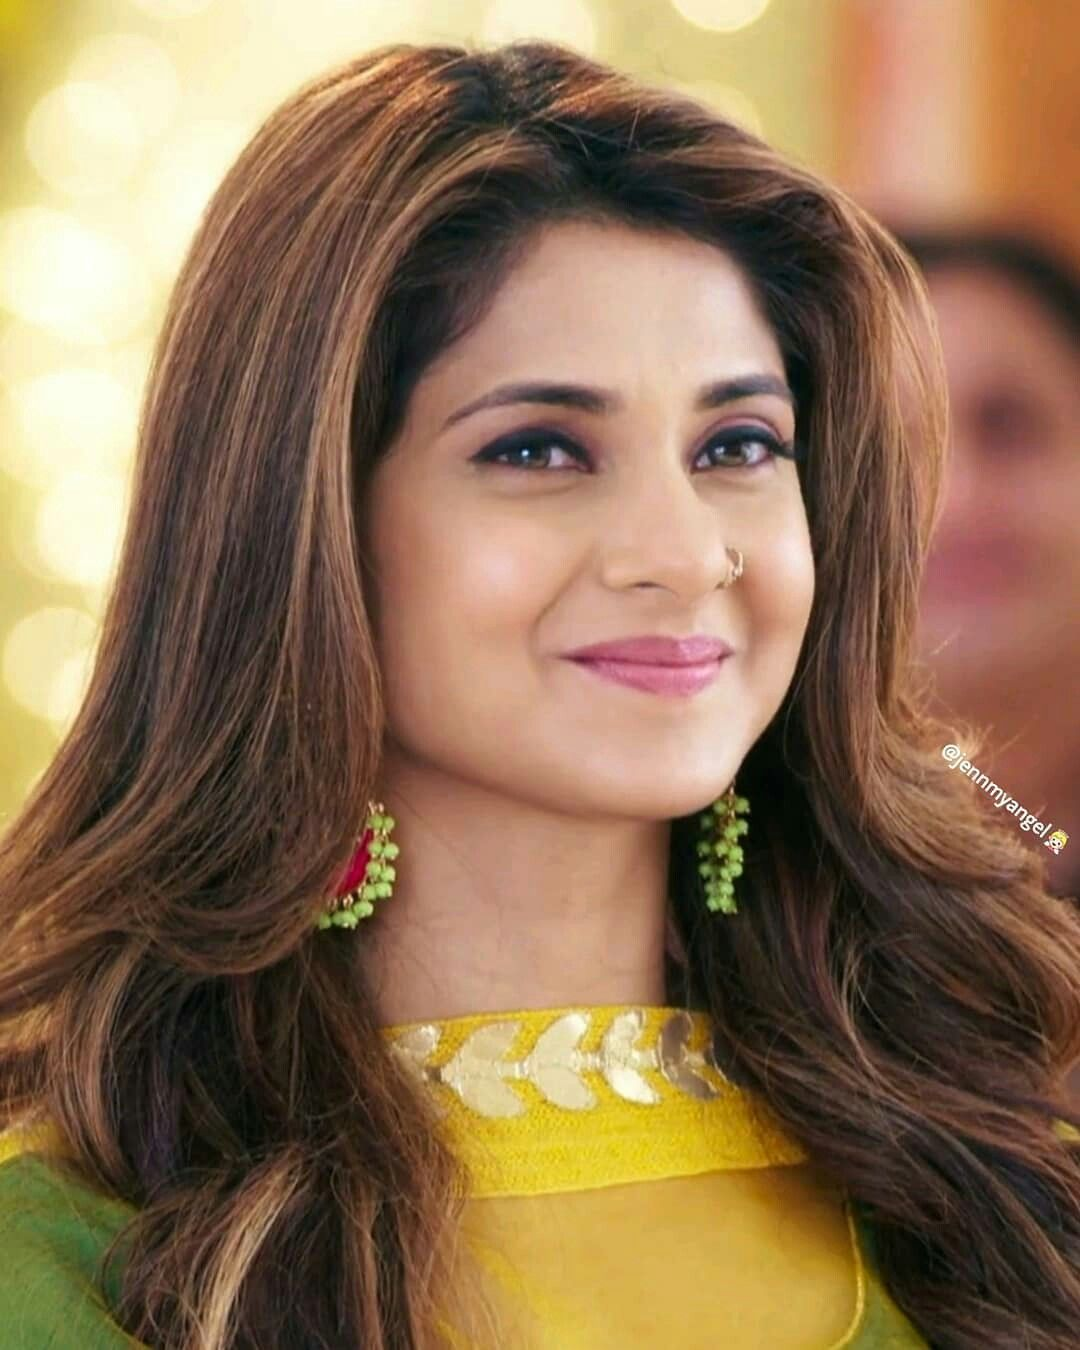 Jennifer Winget Profile Affairs Contacts Boyfriend Gallery News Hd Images Wiki Go Profile All Celeb Profiles Tollywood Bollywood Kollywood Hollywood Go Profiles